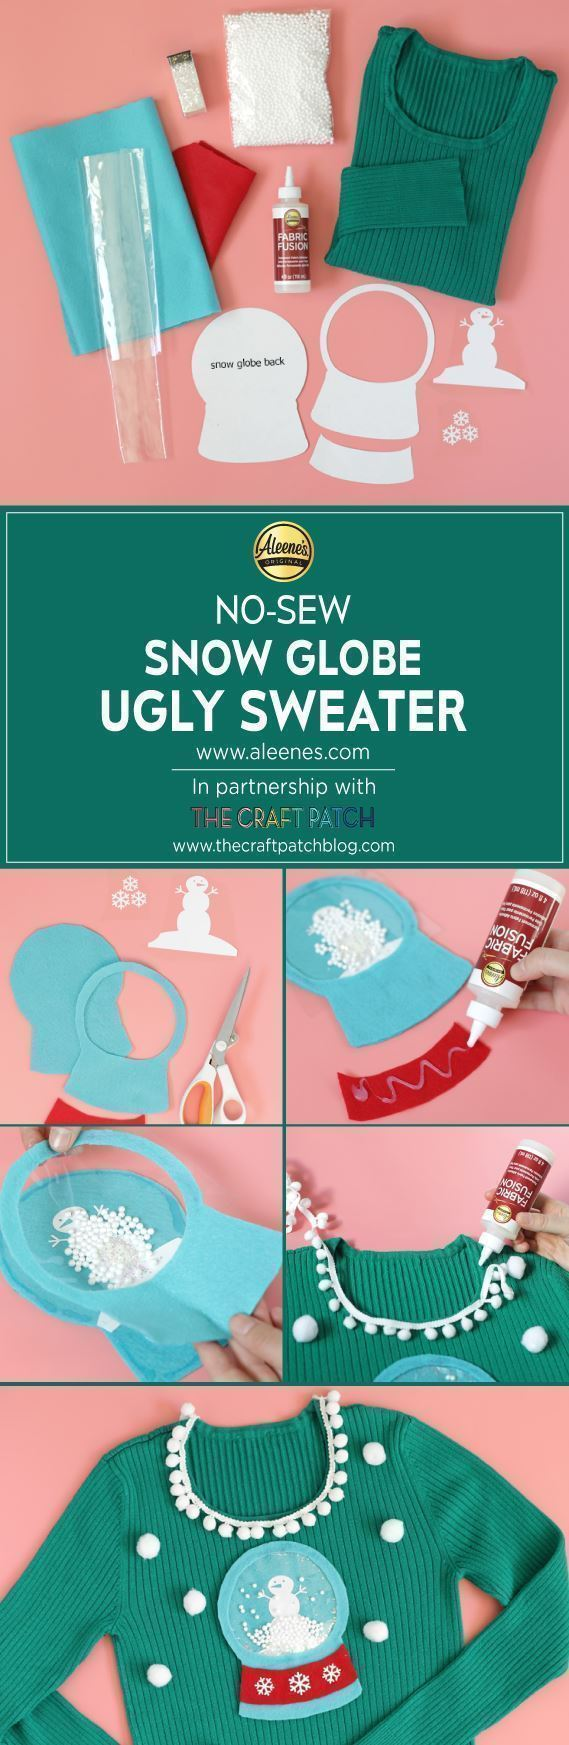 Aleene's No-Sew Snow Globe Ugly Sweater